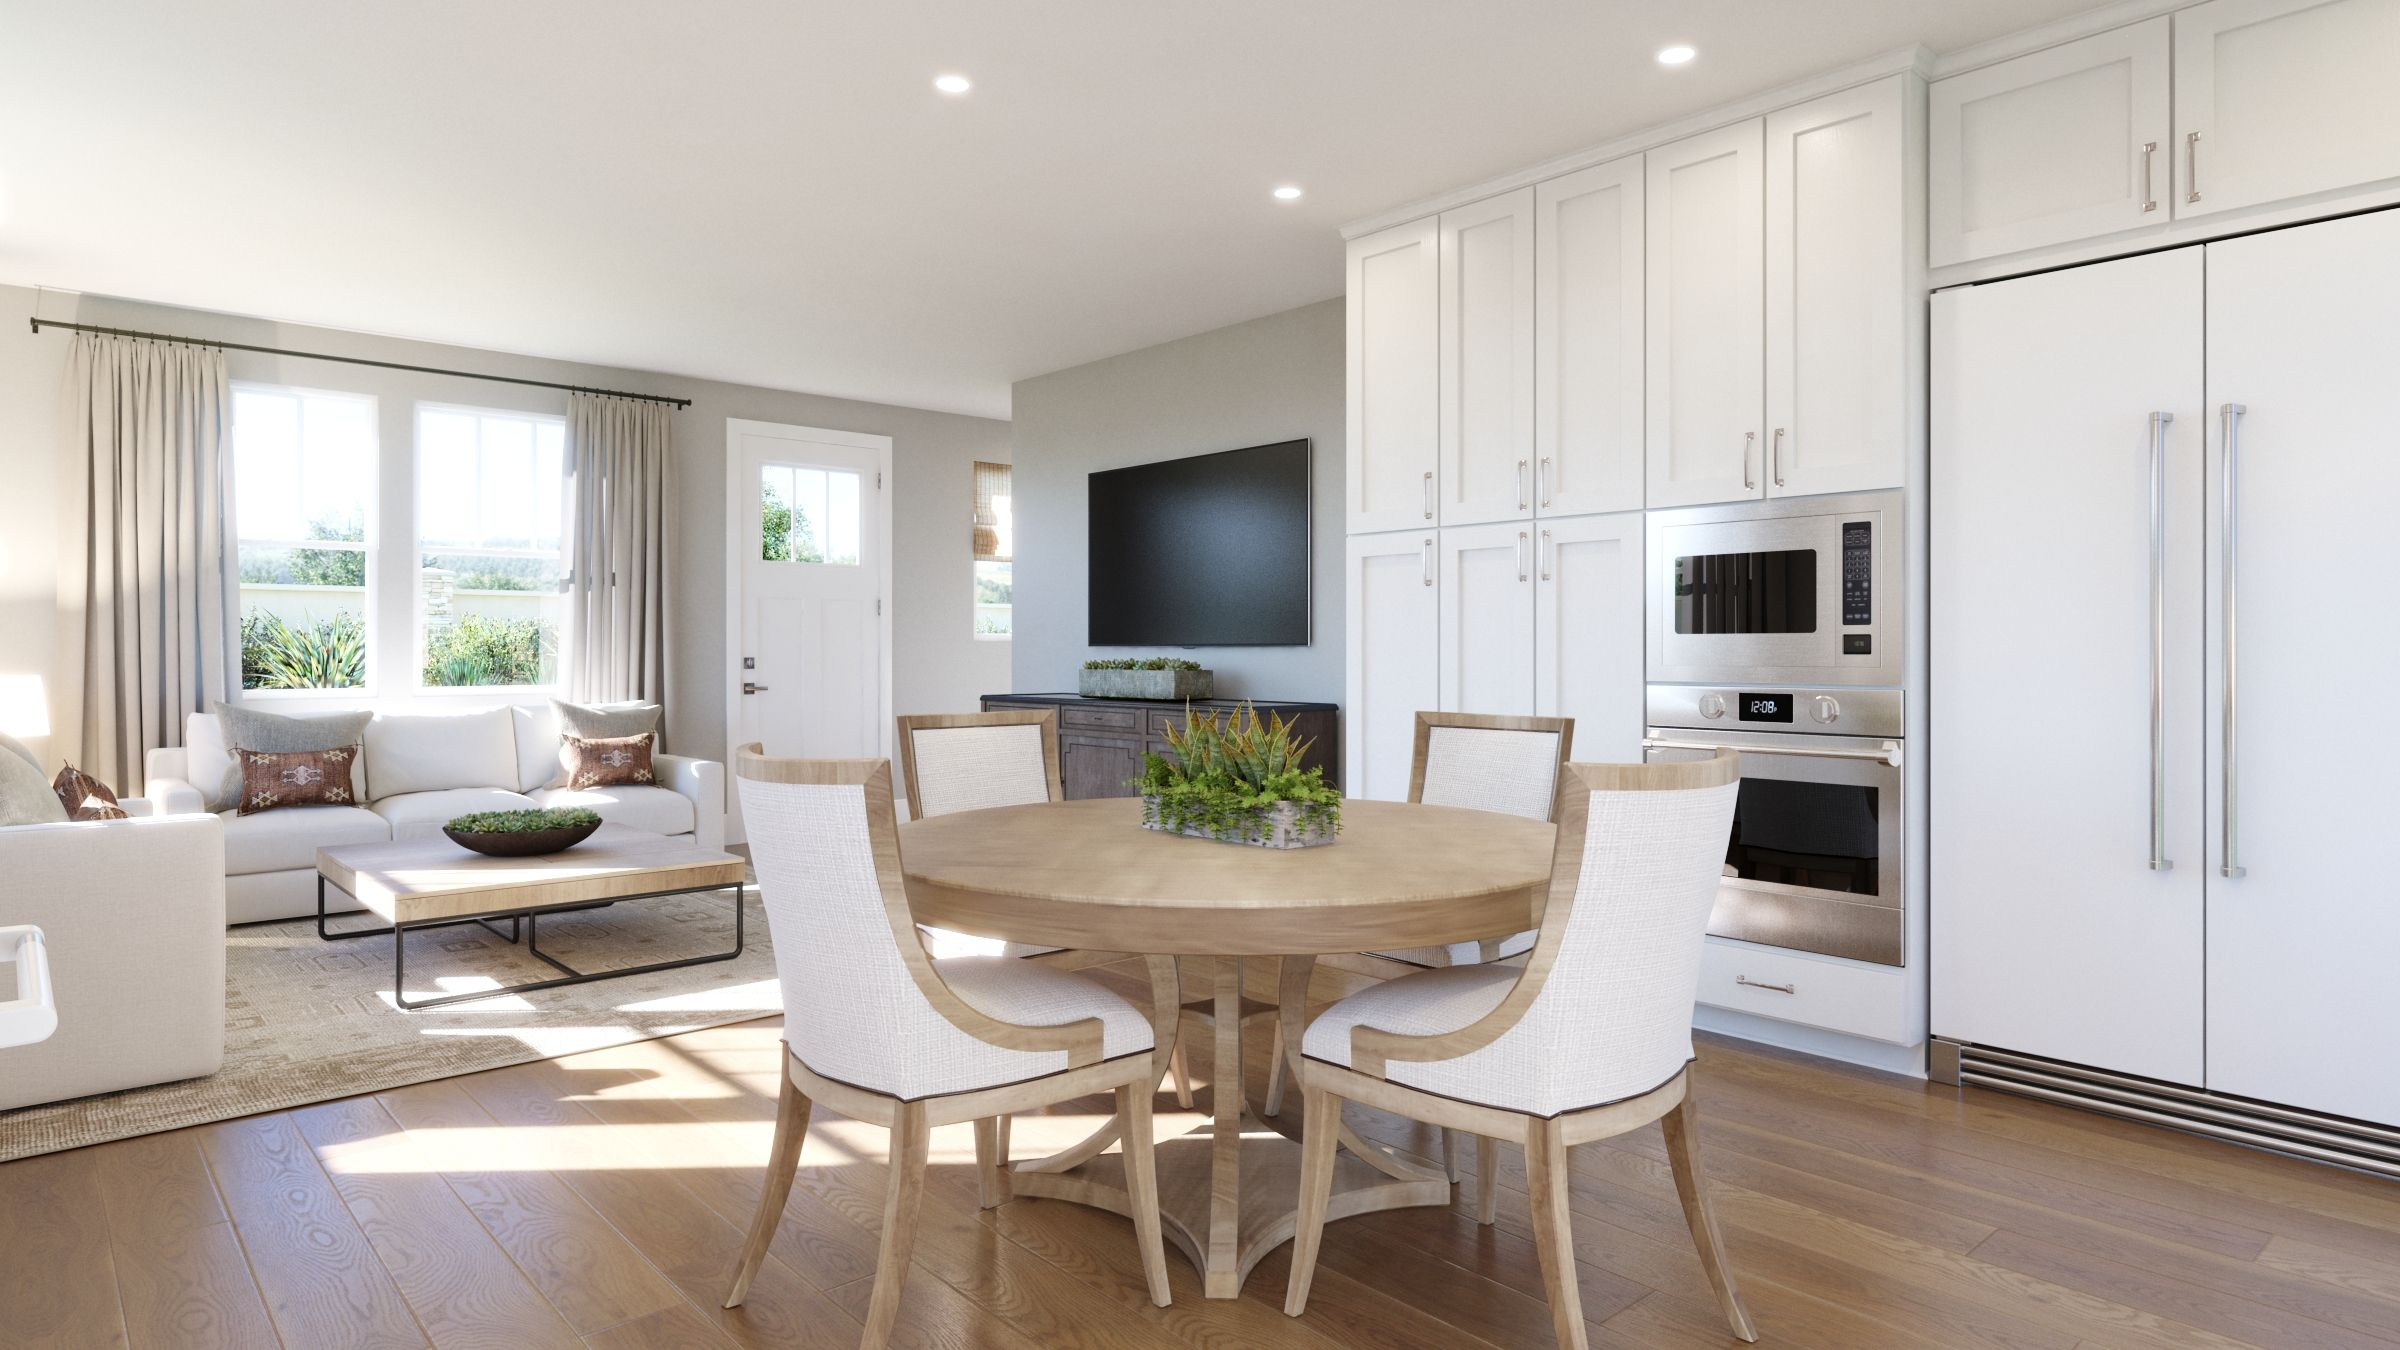 Kitchen featured in the 1D By SummerHill Homes in San Jose, CA